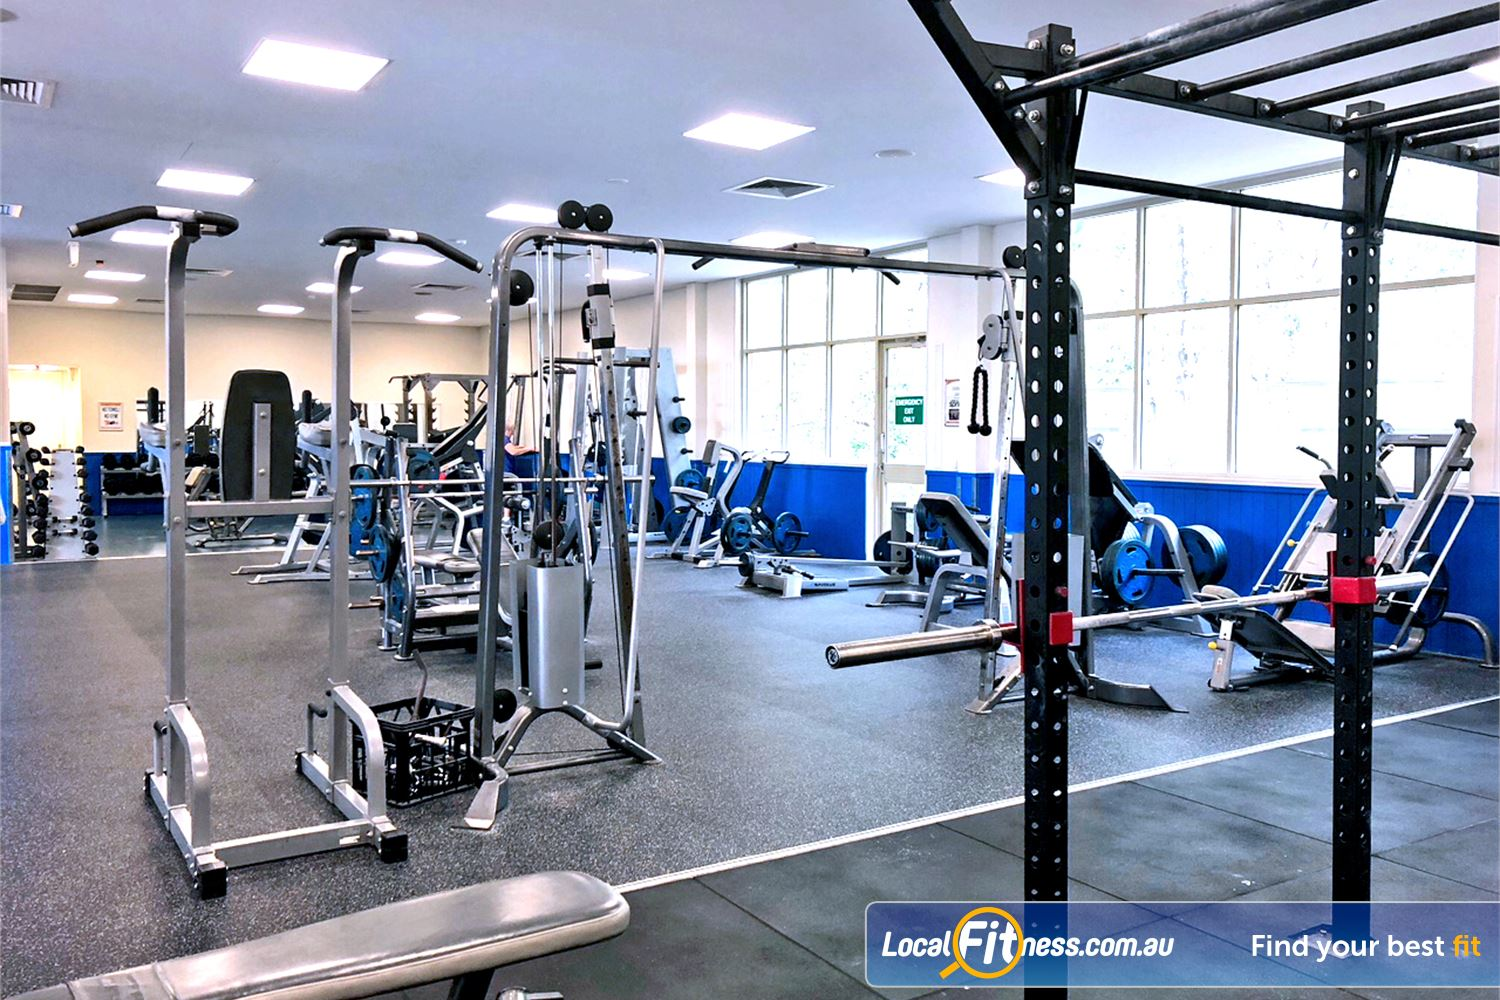 Albany Creek Leisure Centre Near Bunya The fully equipped free-weights and strength area.